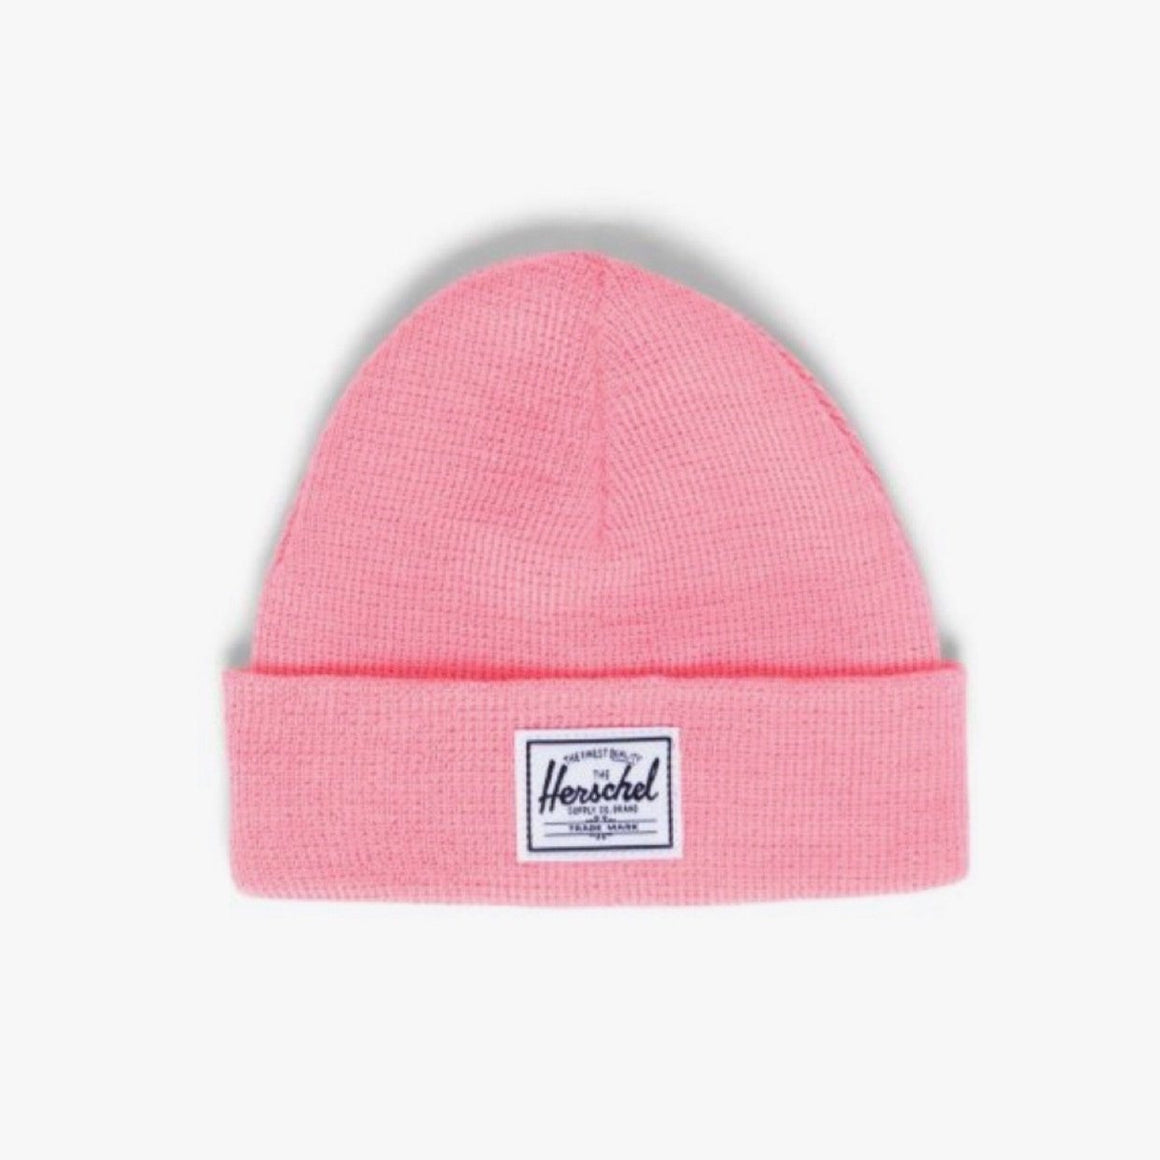 Herschel - Cold Weather Baby Beanie - Flamingo Pink Winter Hat Herschel